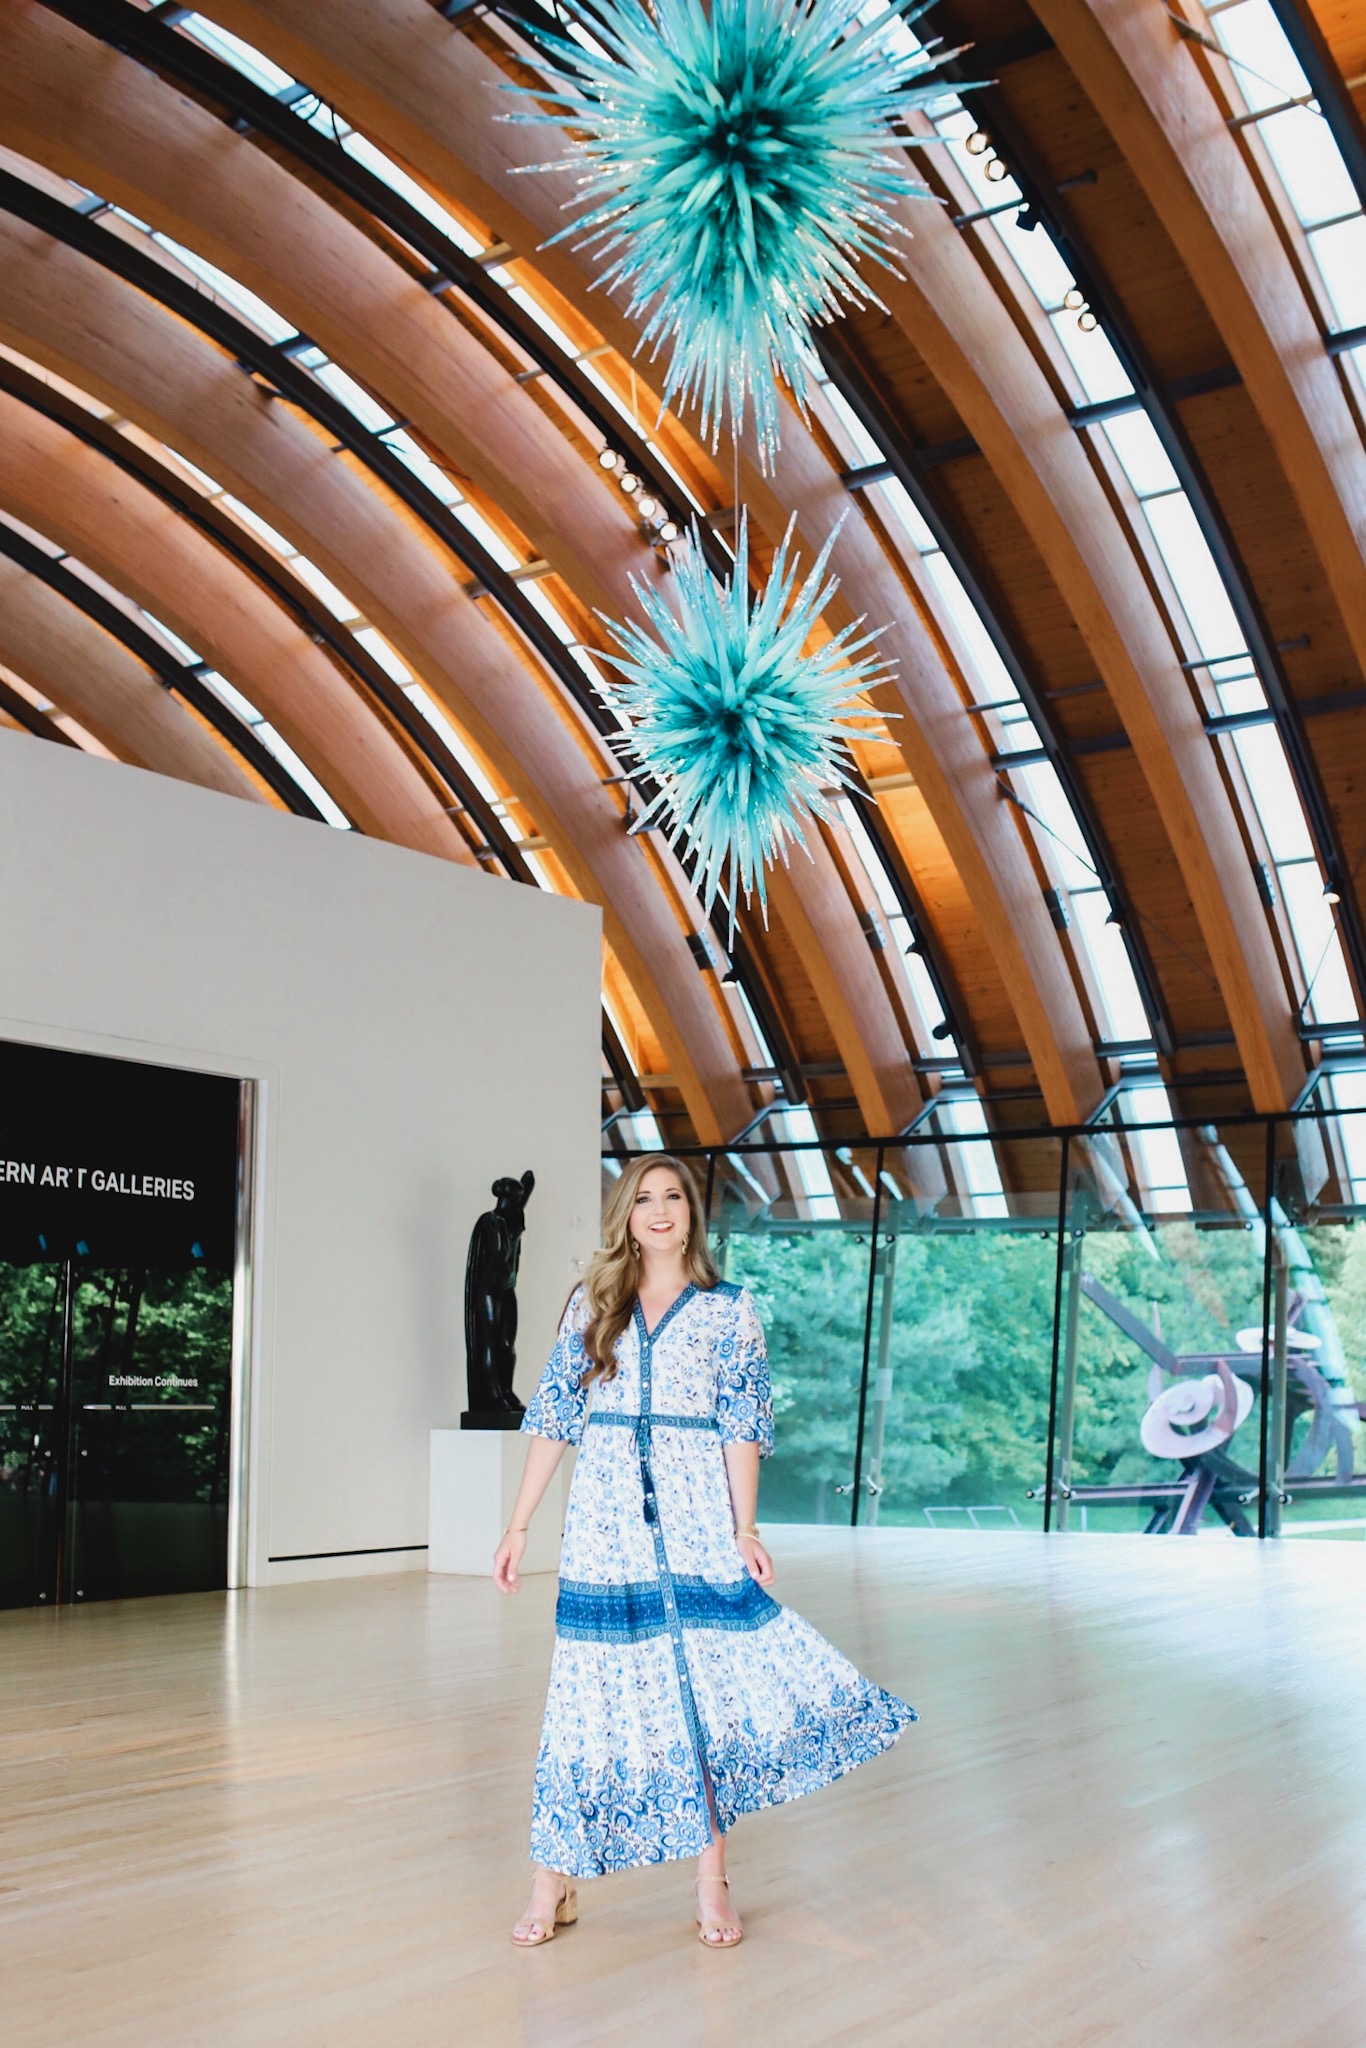 Summer Events at Crystal Bridges Museum